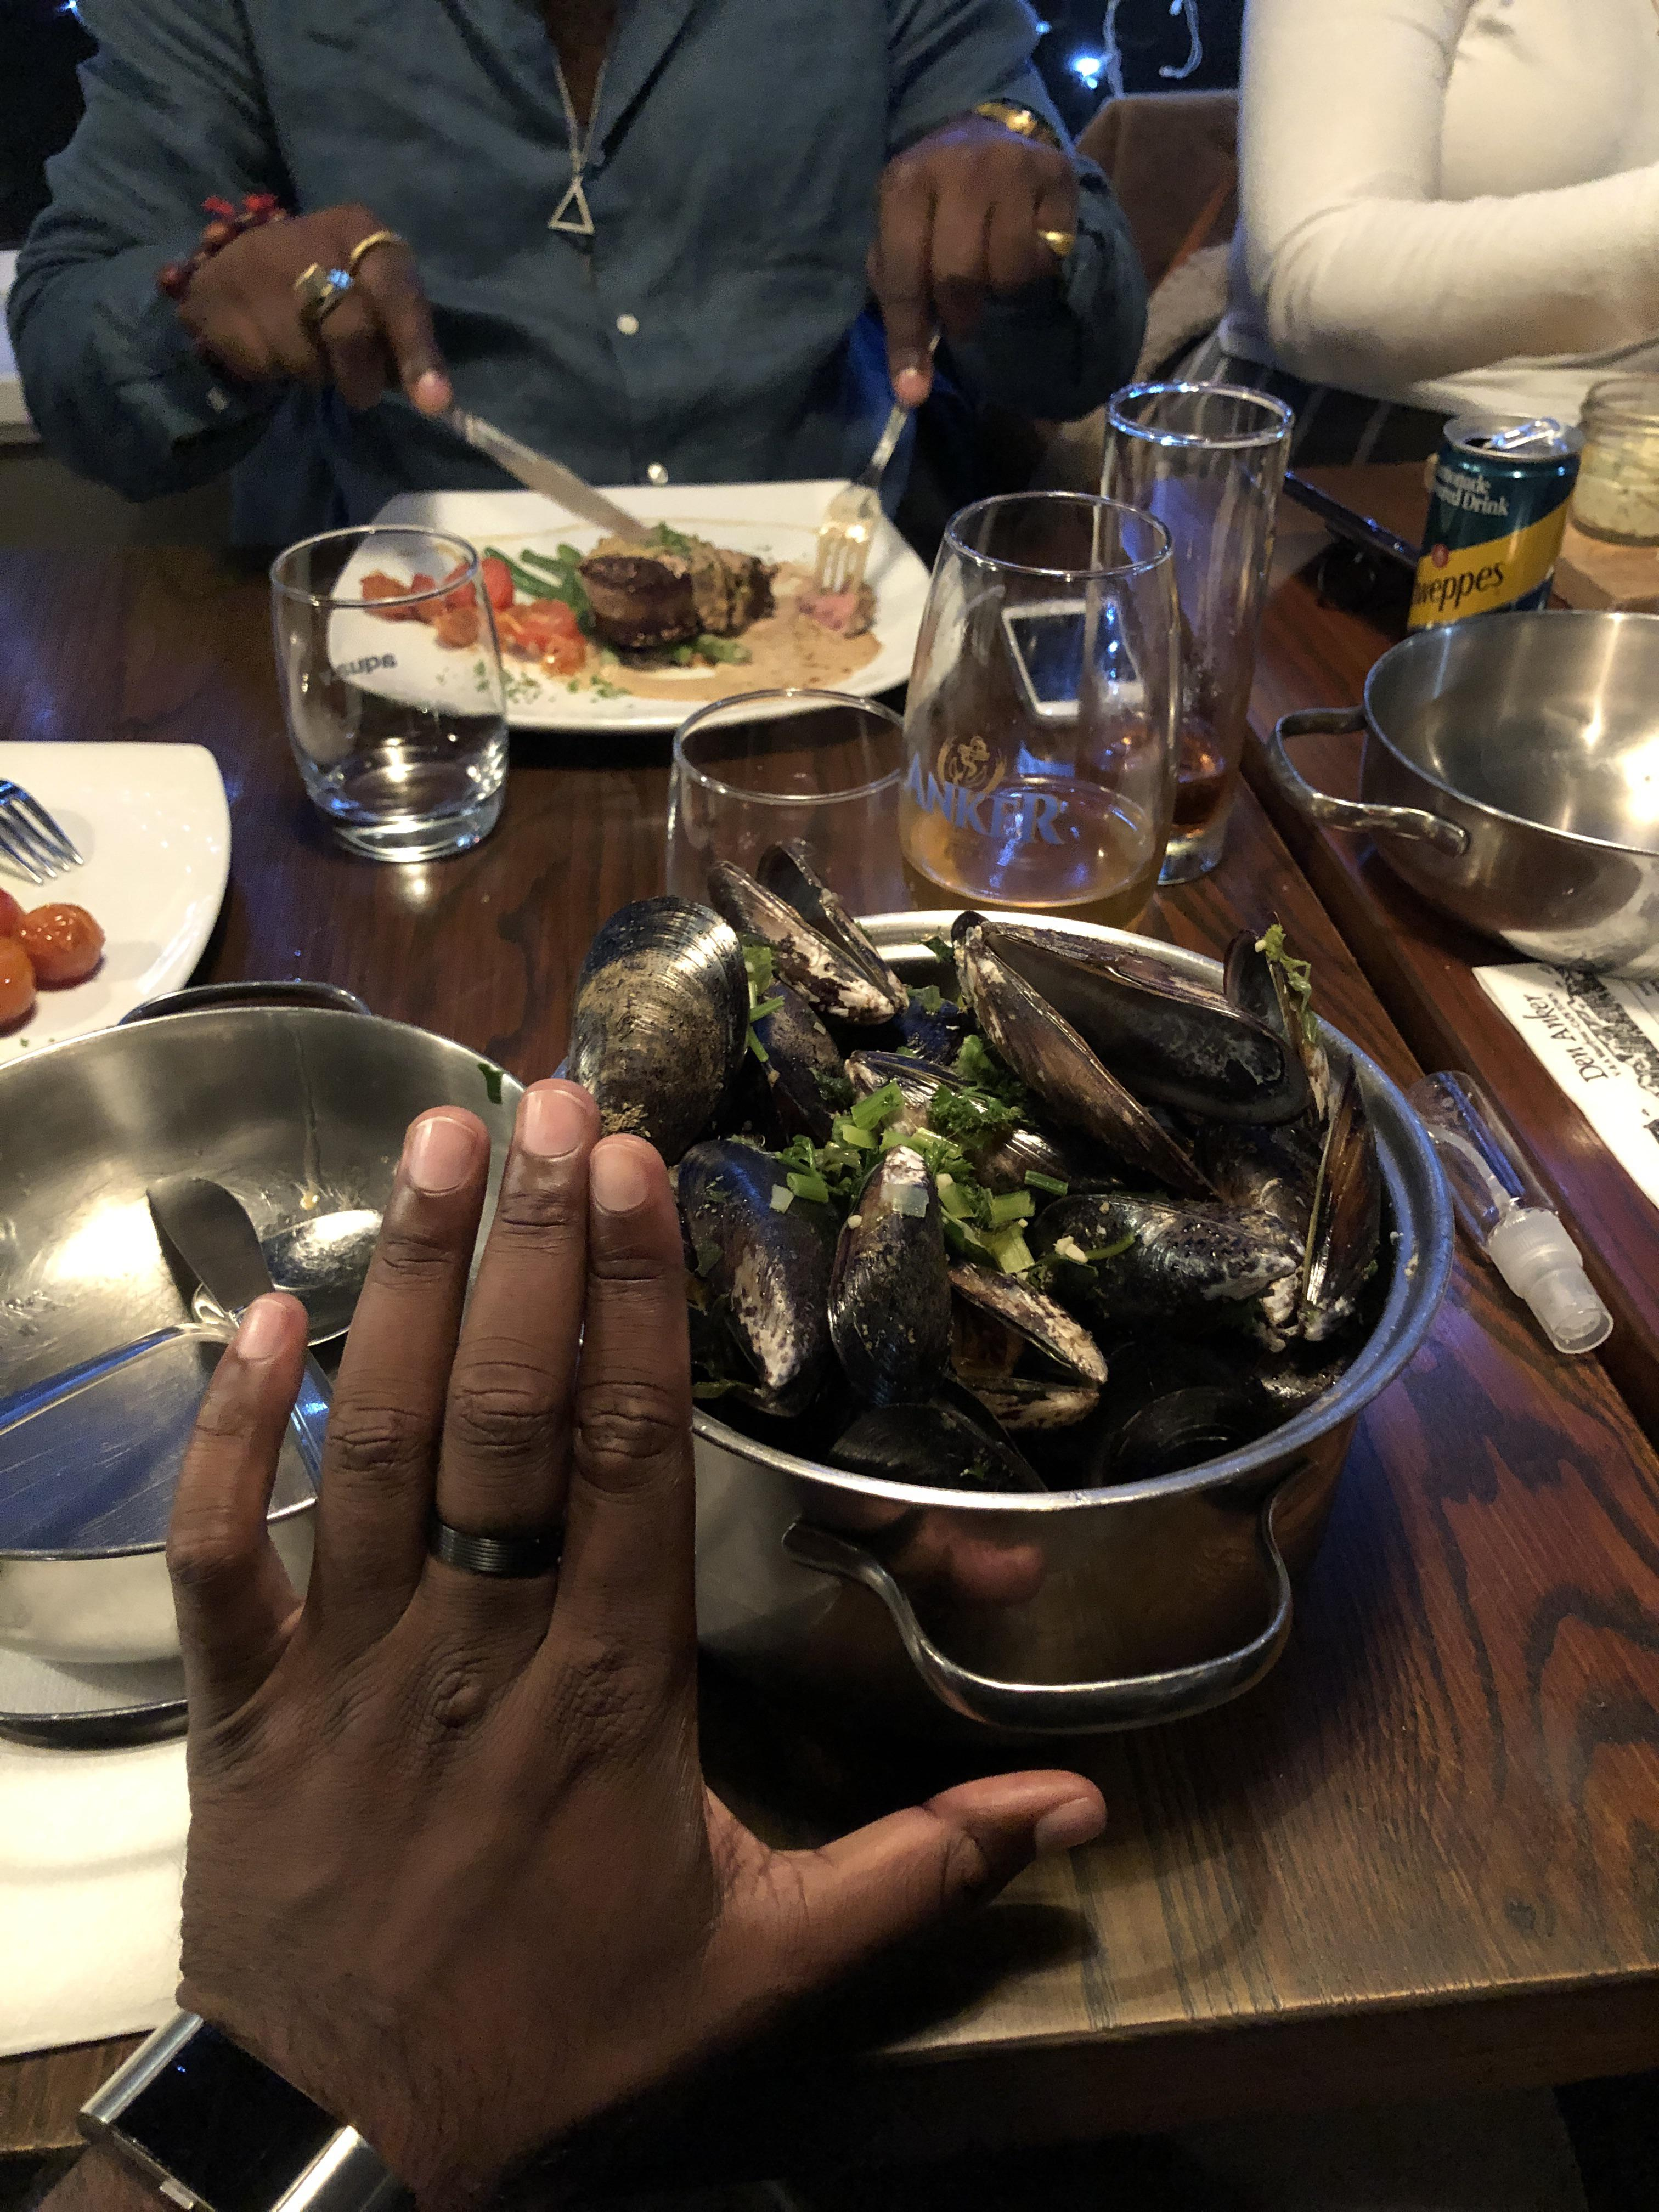 1kg of Belgian style mussels to myself for dinner. Hand for scale. The beer was pretty good too